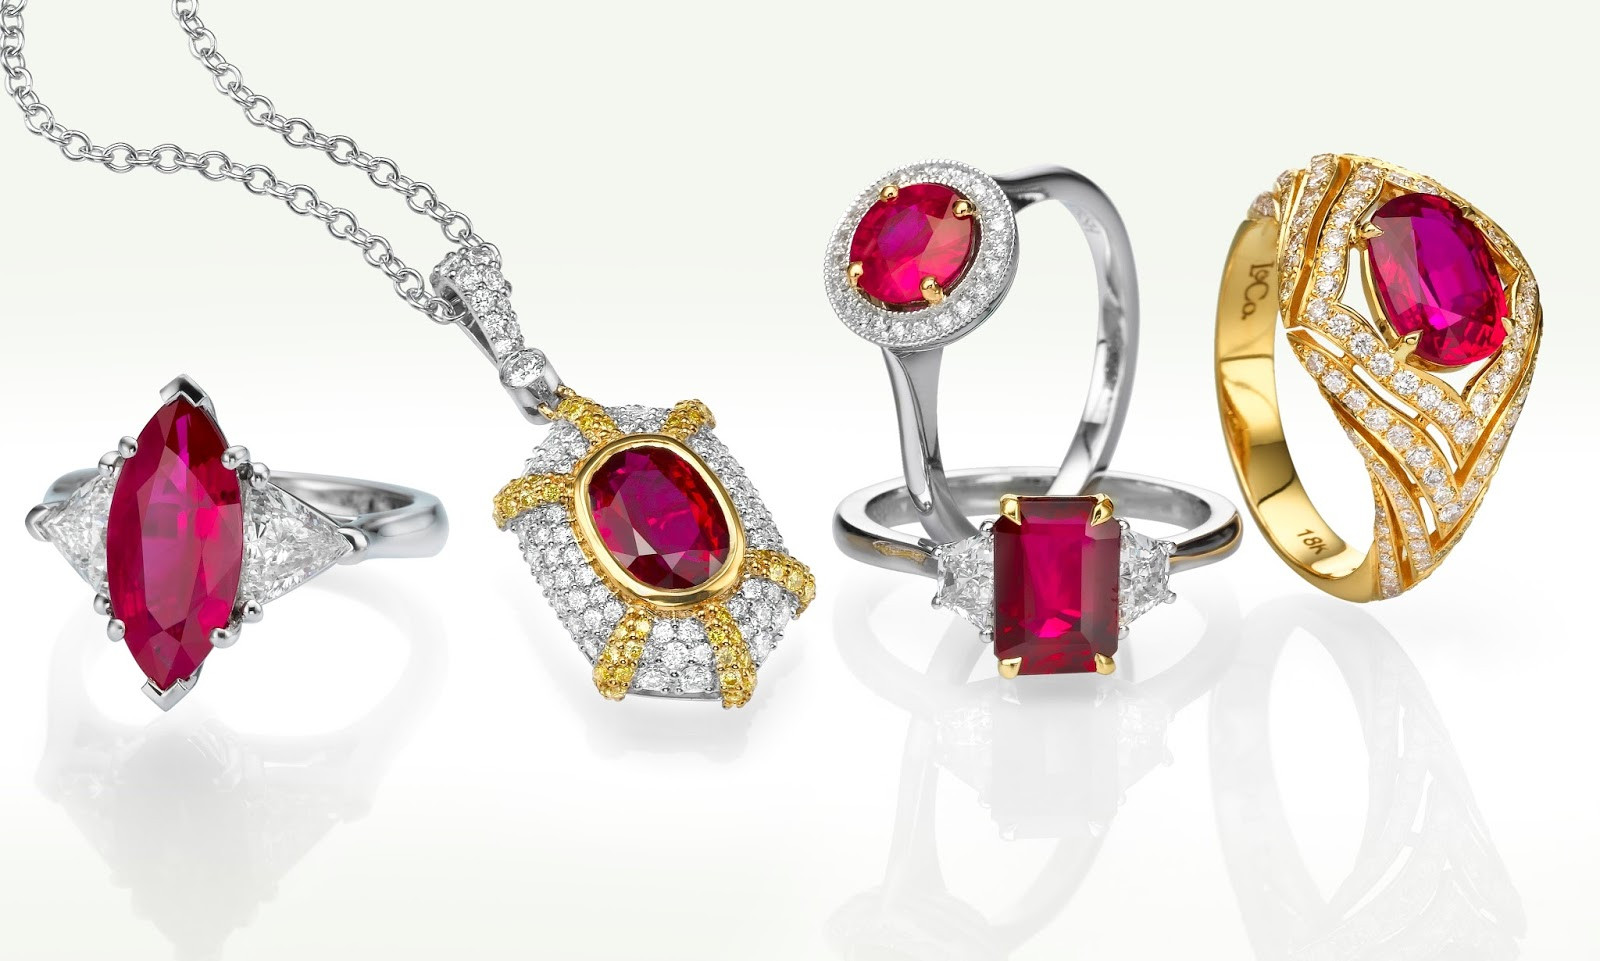 Best ideas about Jewelry Gift Ideas . Save or Pin 12 Best Valentines Gift Ideas For Her in This 2016 Now.